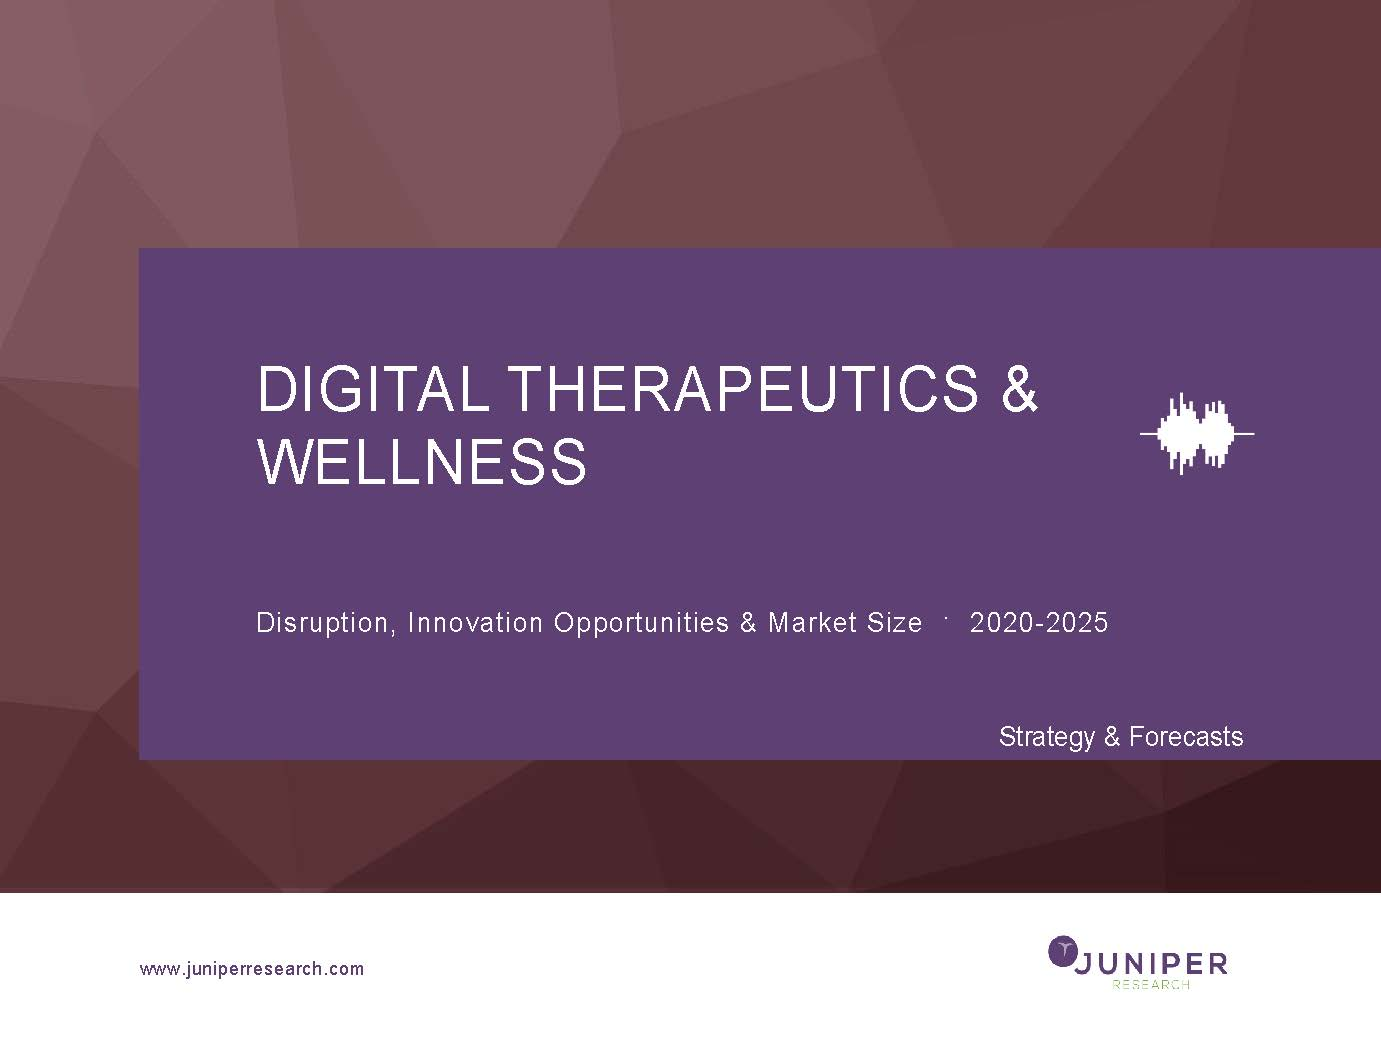 Digital Therapeutics & Wellness: Disruption, Innovation Opportunities & Market Size 2020-2025